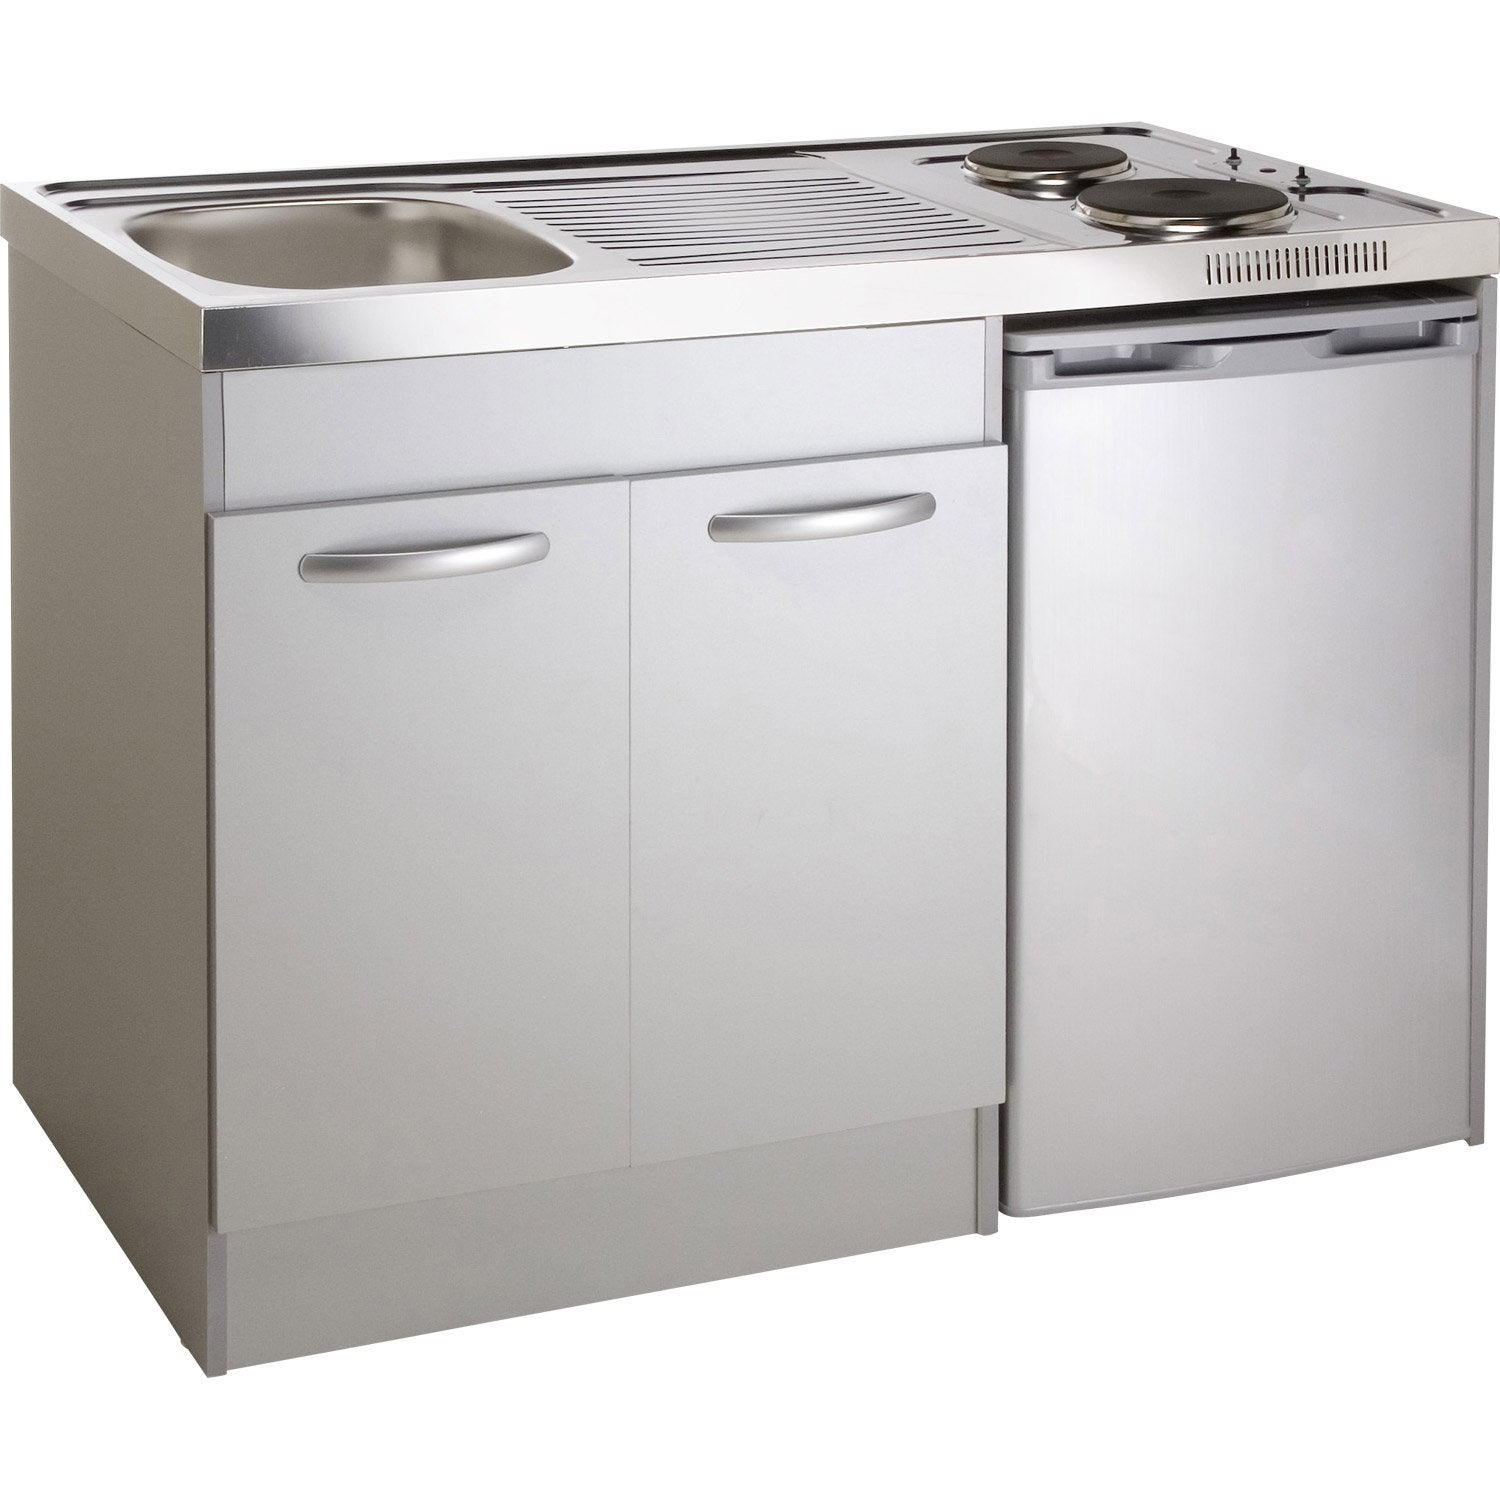 Kitchenette electrique gris aluminium spring x l - Kitchenette leroy merlin ...